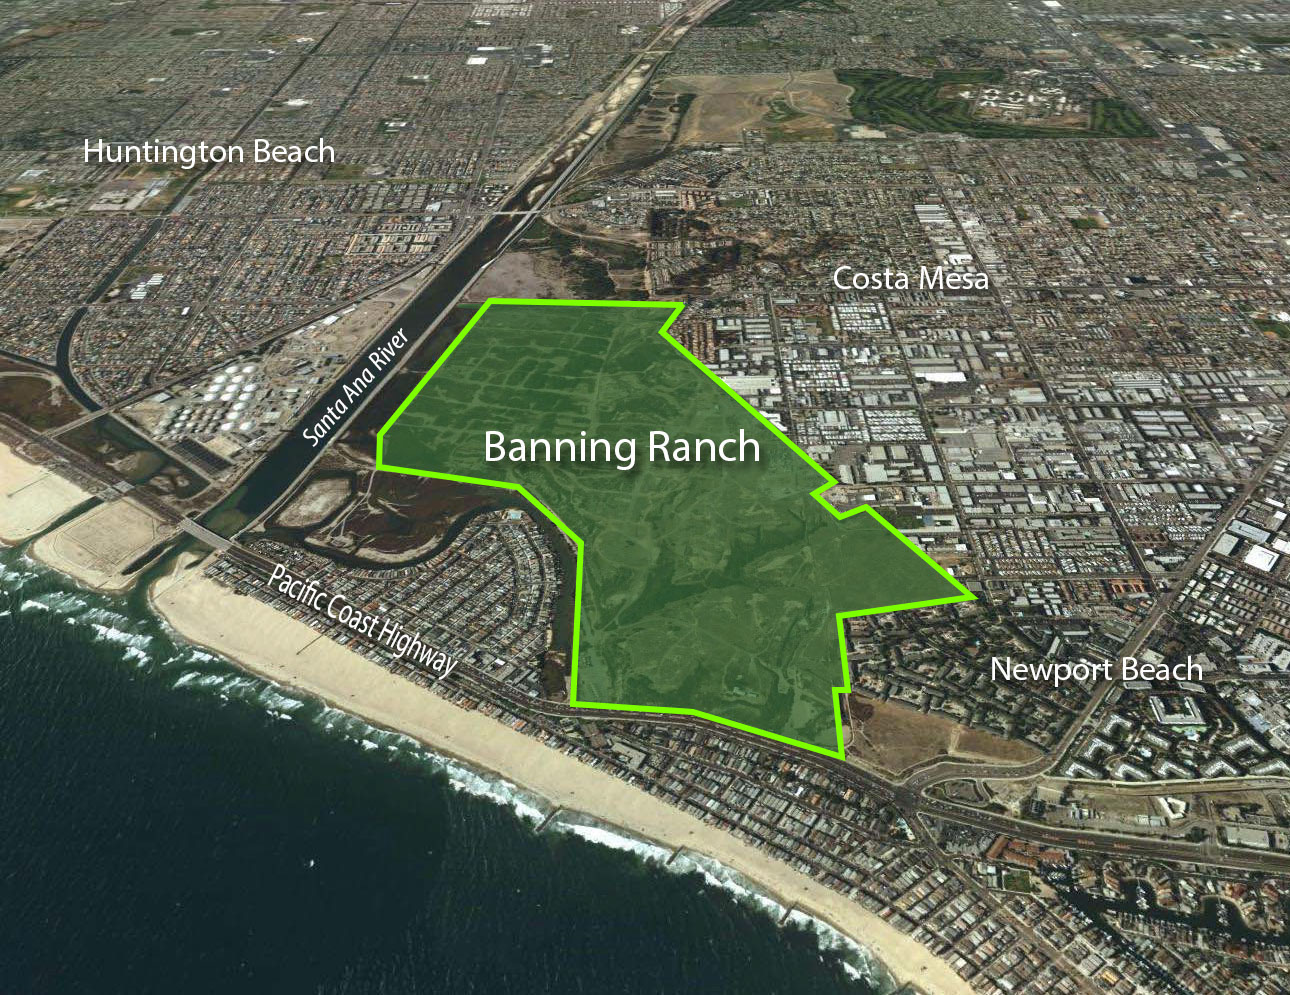 Banning Ranch is located along the Santa Ana River where it meets the ocean.